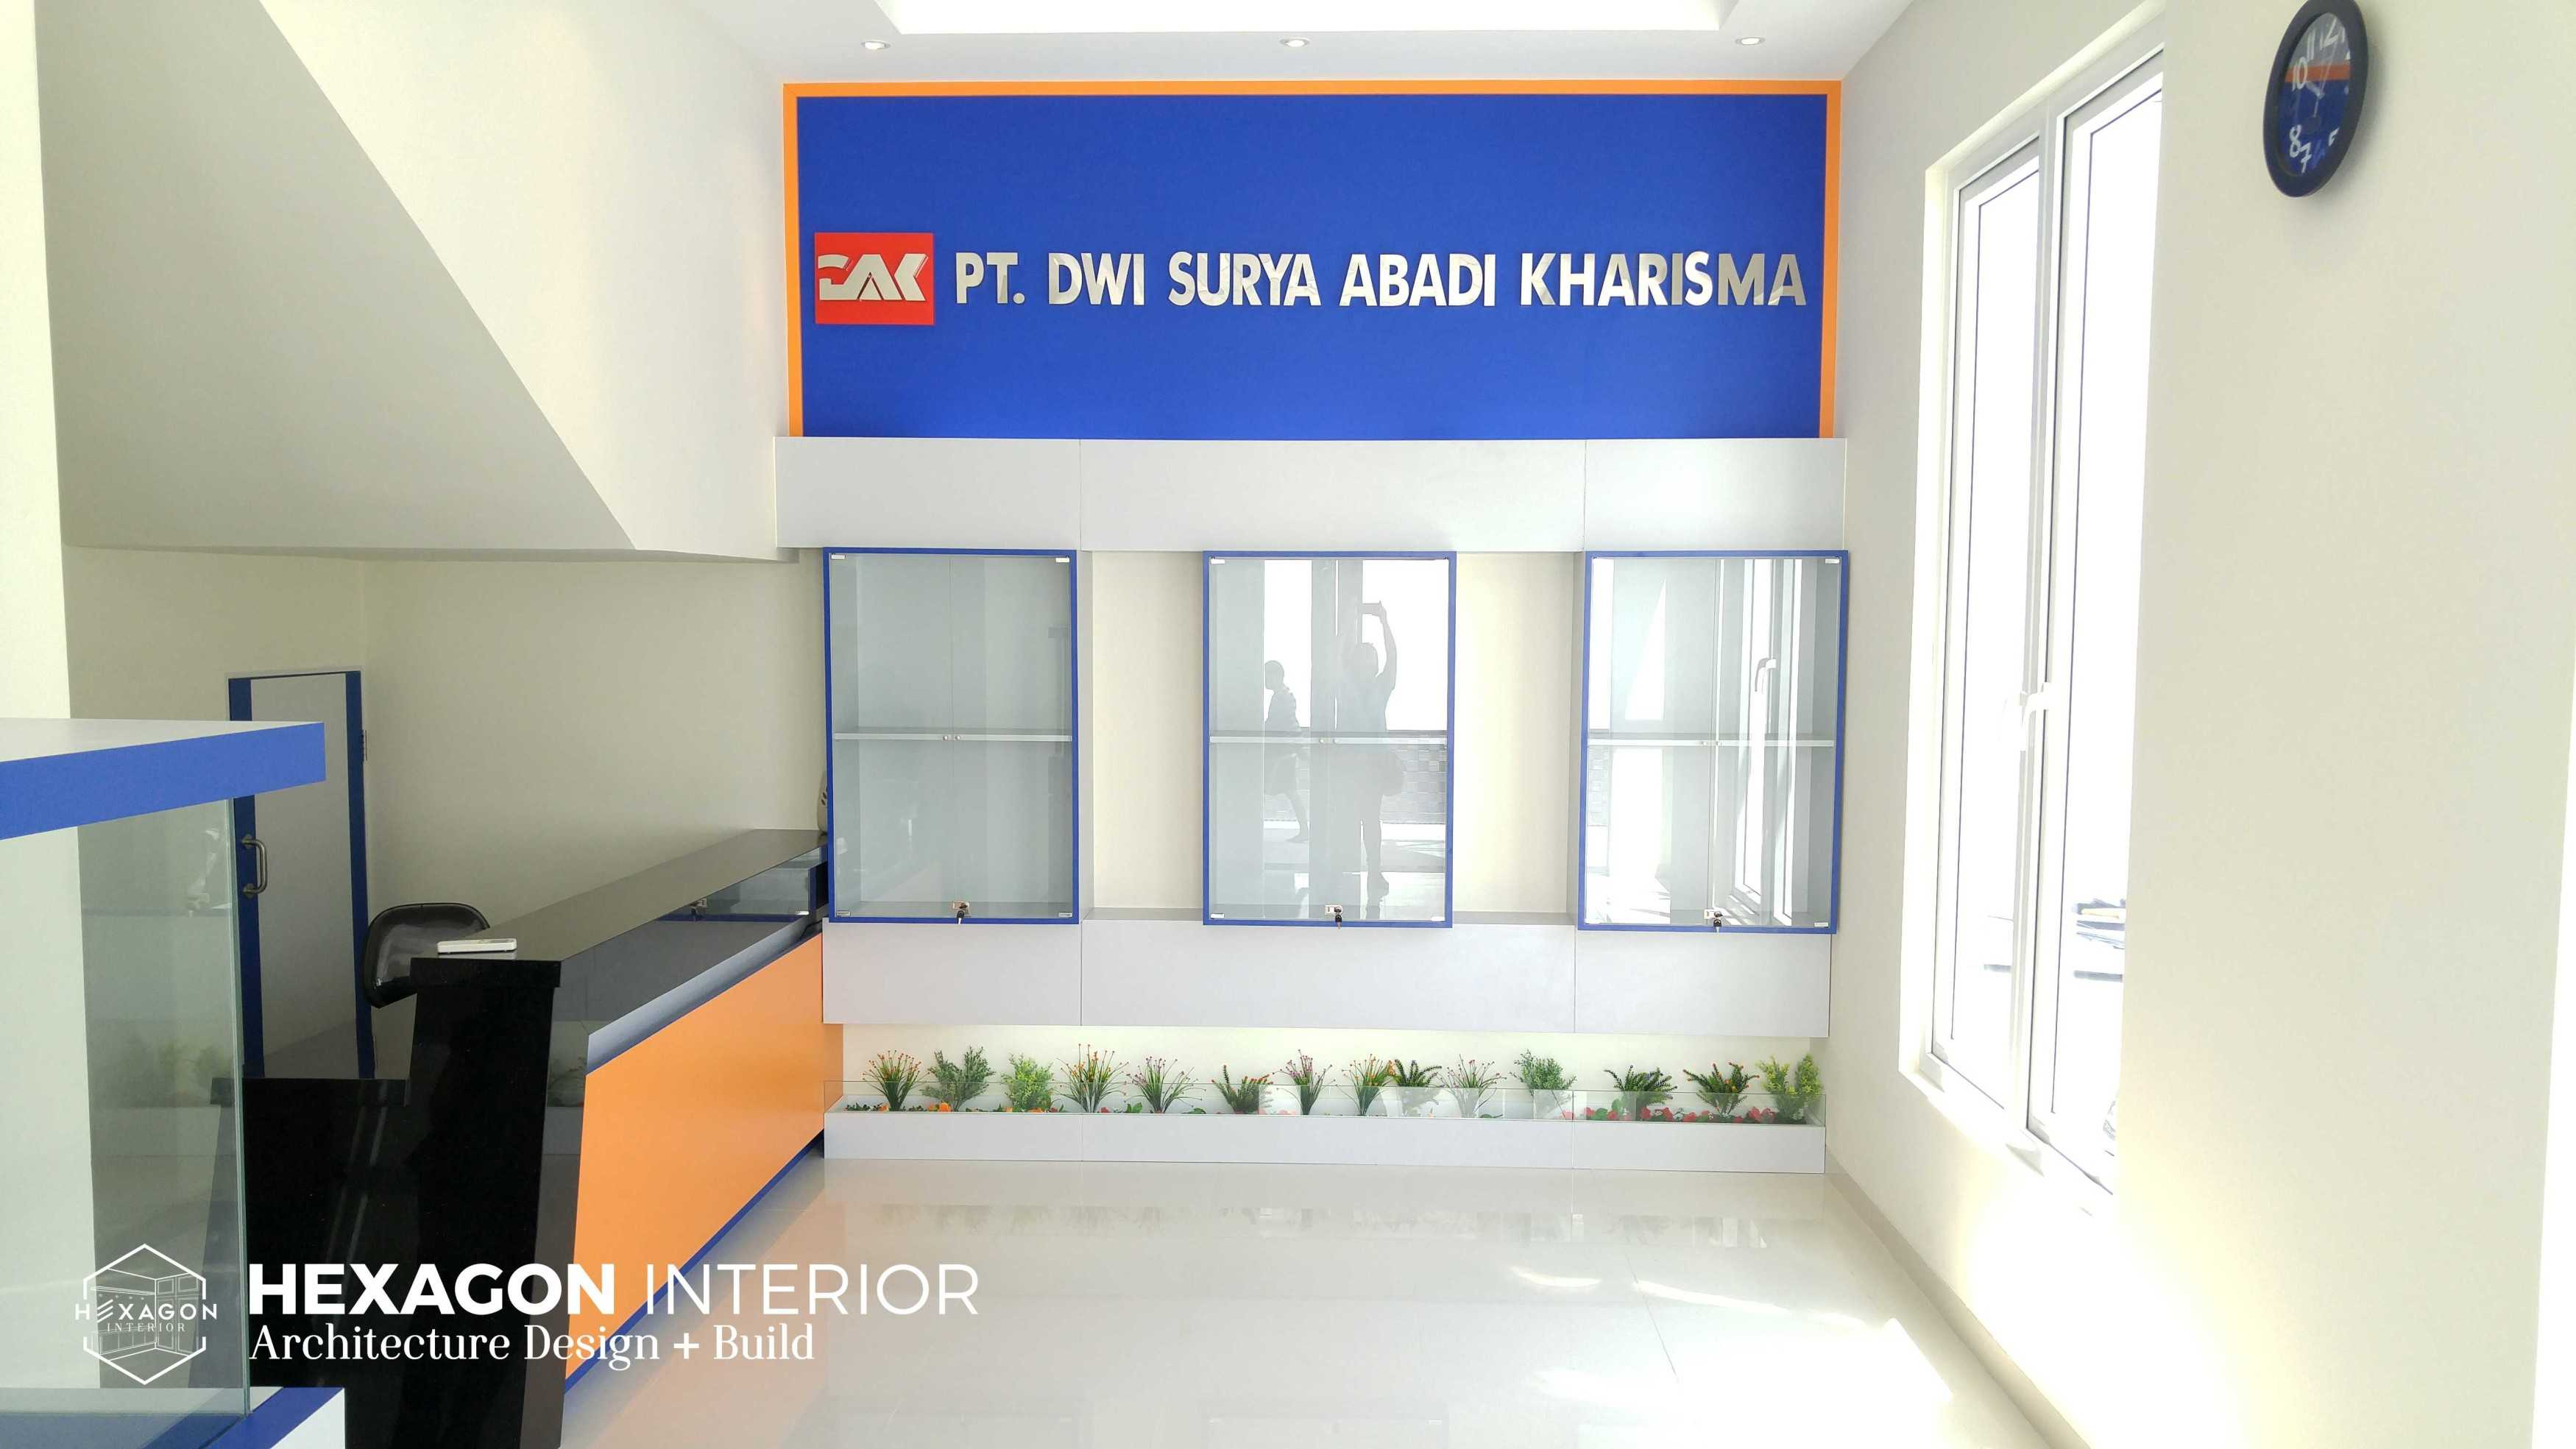 Hexagon Interior Showroom - Office Project At Surabaya   Hexagon-Interior-Showroom-Office-Project-At-Surabaya   51454